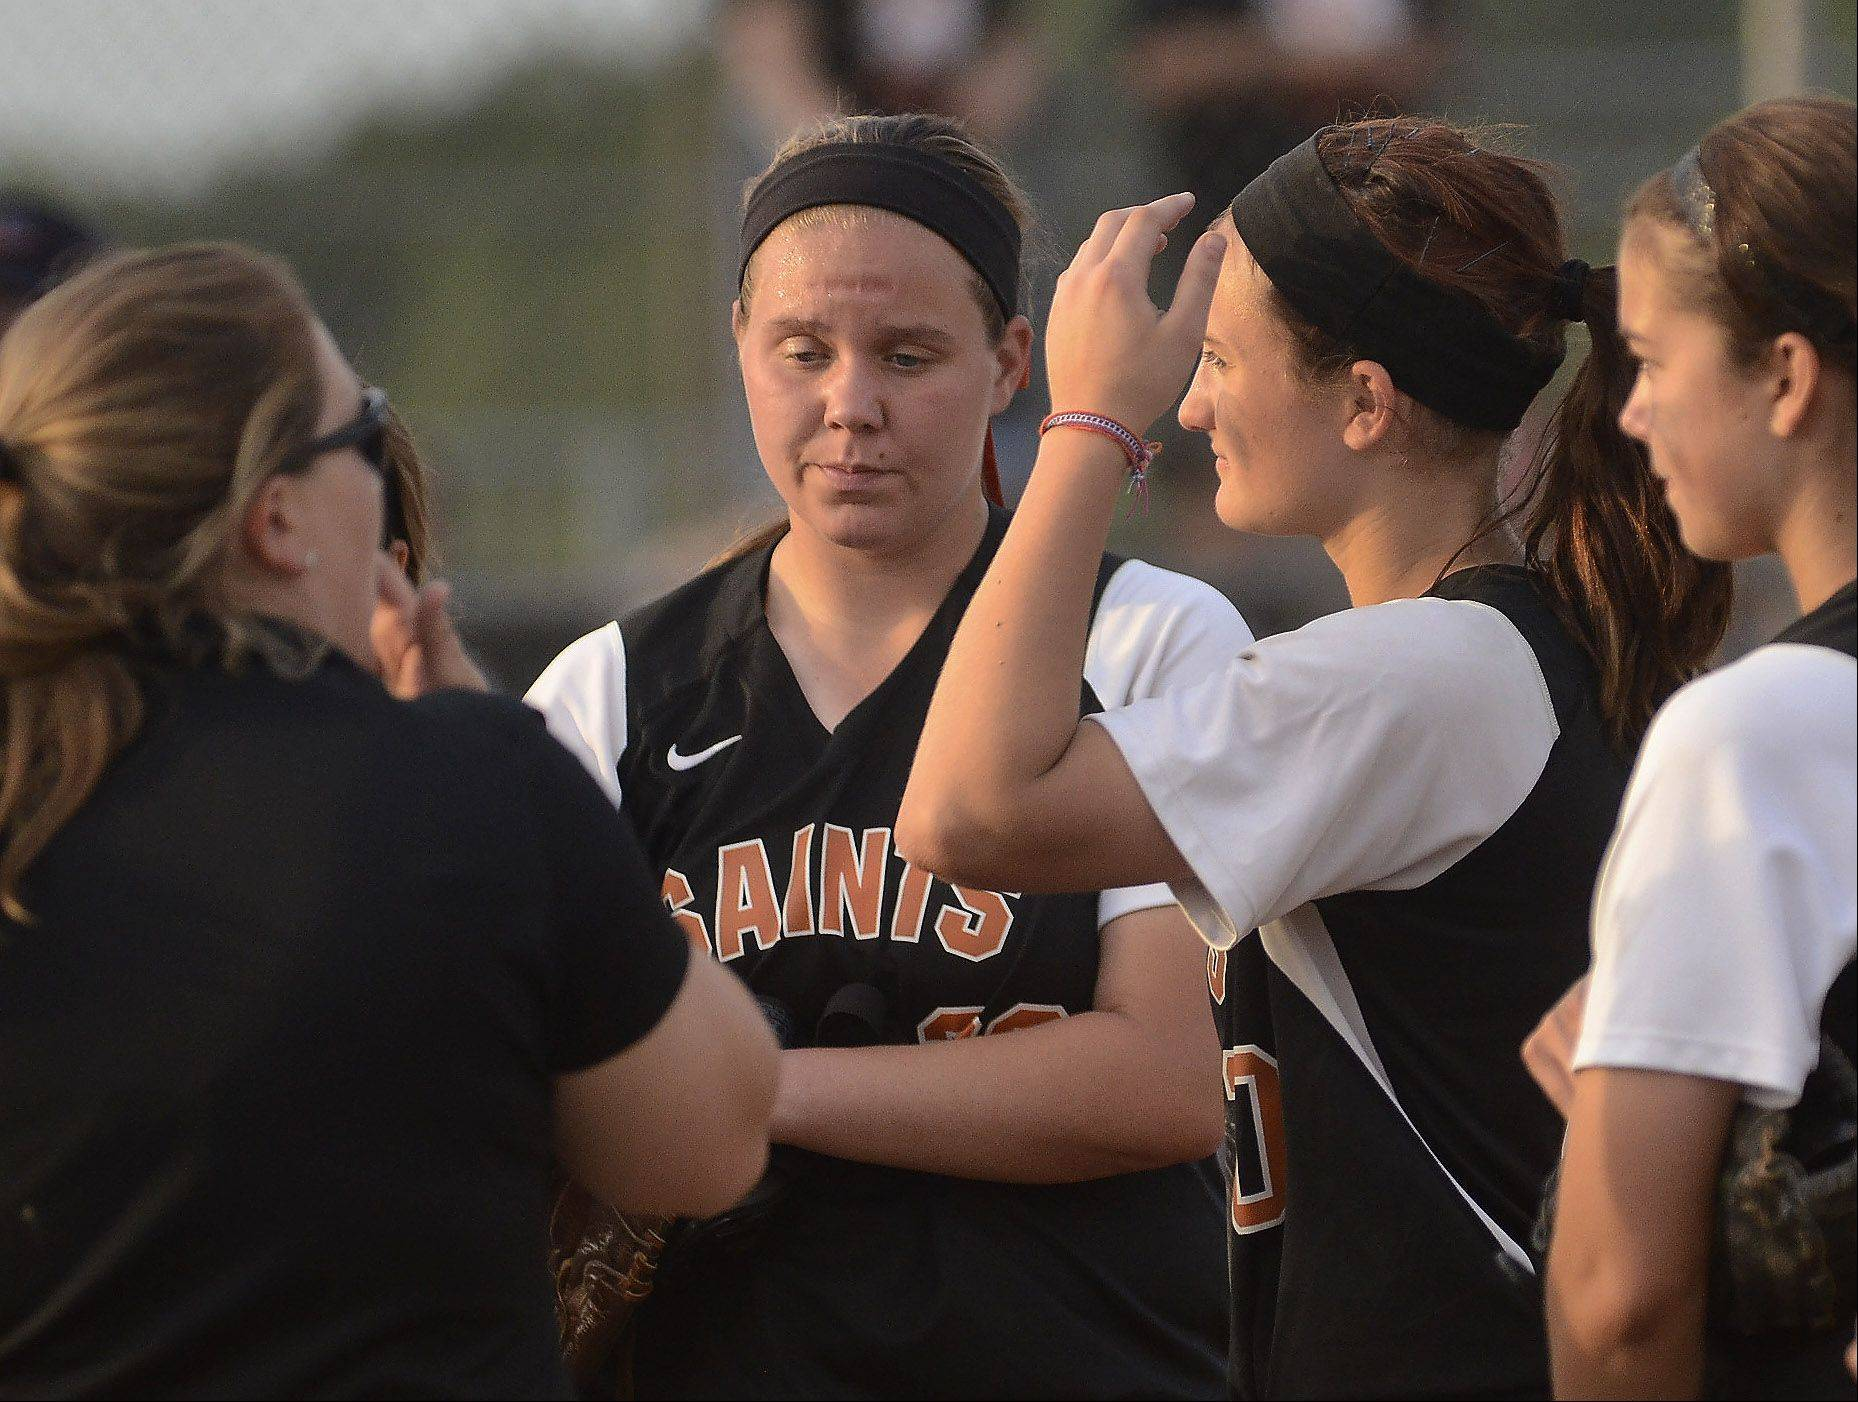 St. Charles head coach Kelly Horan tries to rally her team while losing to Minooka in the Class 4A softball championship game.